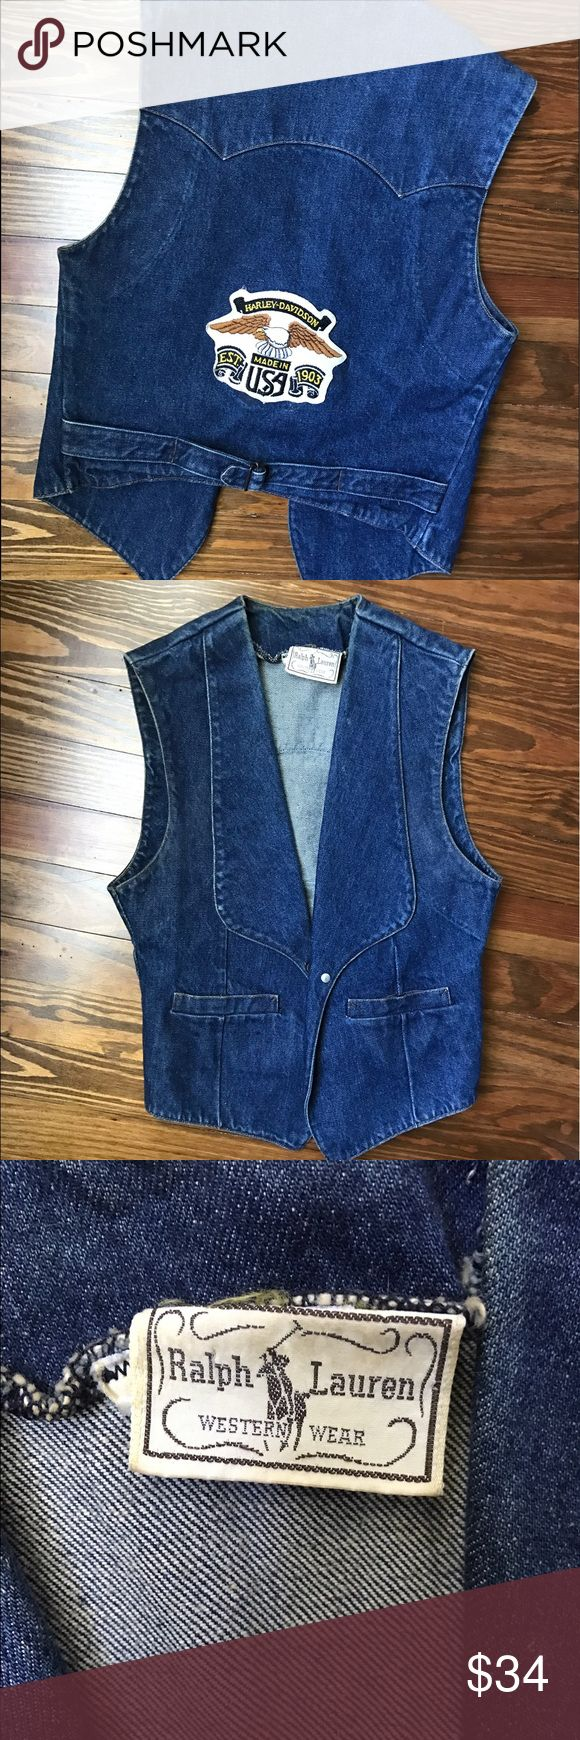 Vintage Ralph Lauren Western denim vest Vintage one of a kind Ralph Lauren denim jean vest. Apart of his Western Wear collection with a Harley Davidson patch on the back. Fits a size small Ralph Lauren Tops